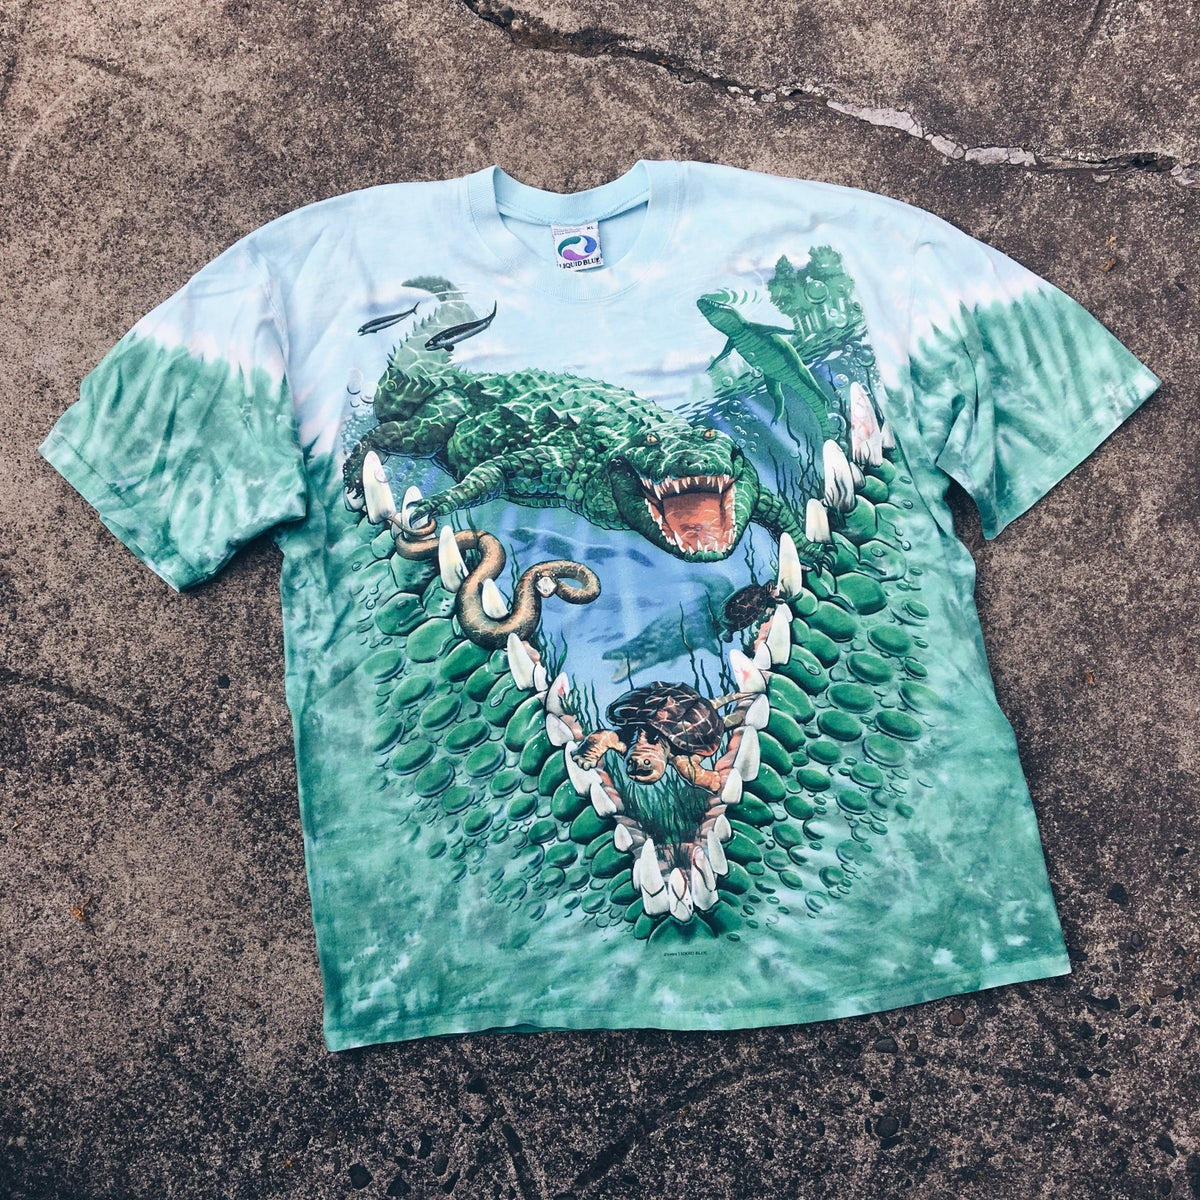 Image of Original 1998 Liquid Blue Alligator Tee.